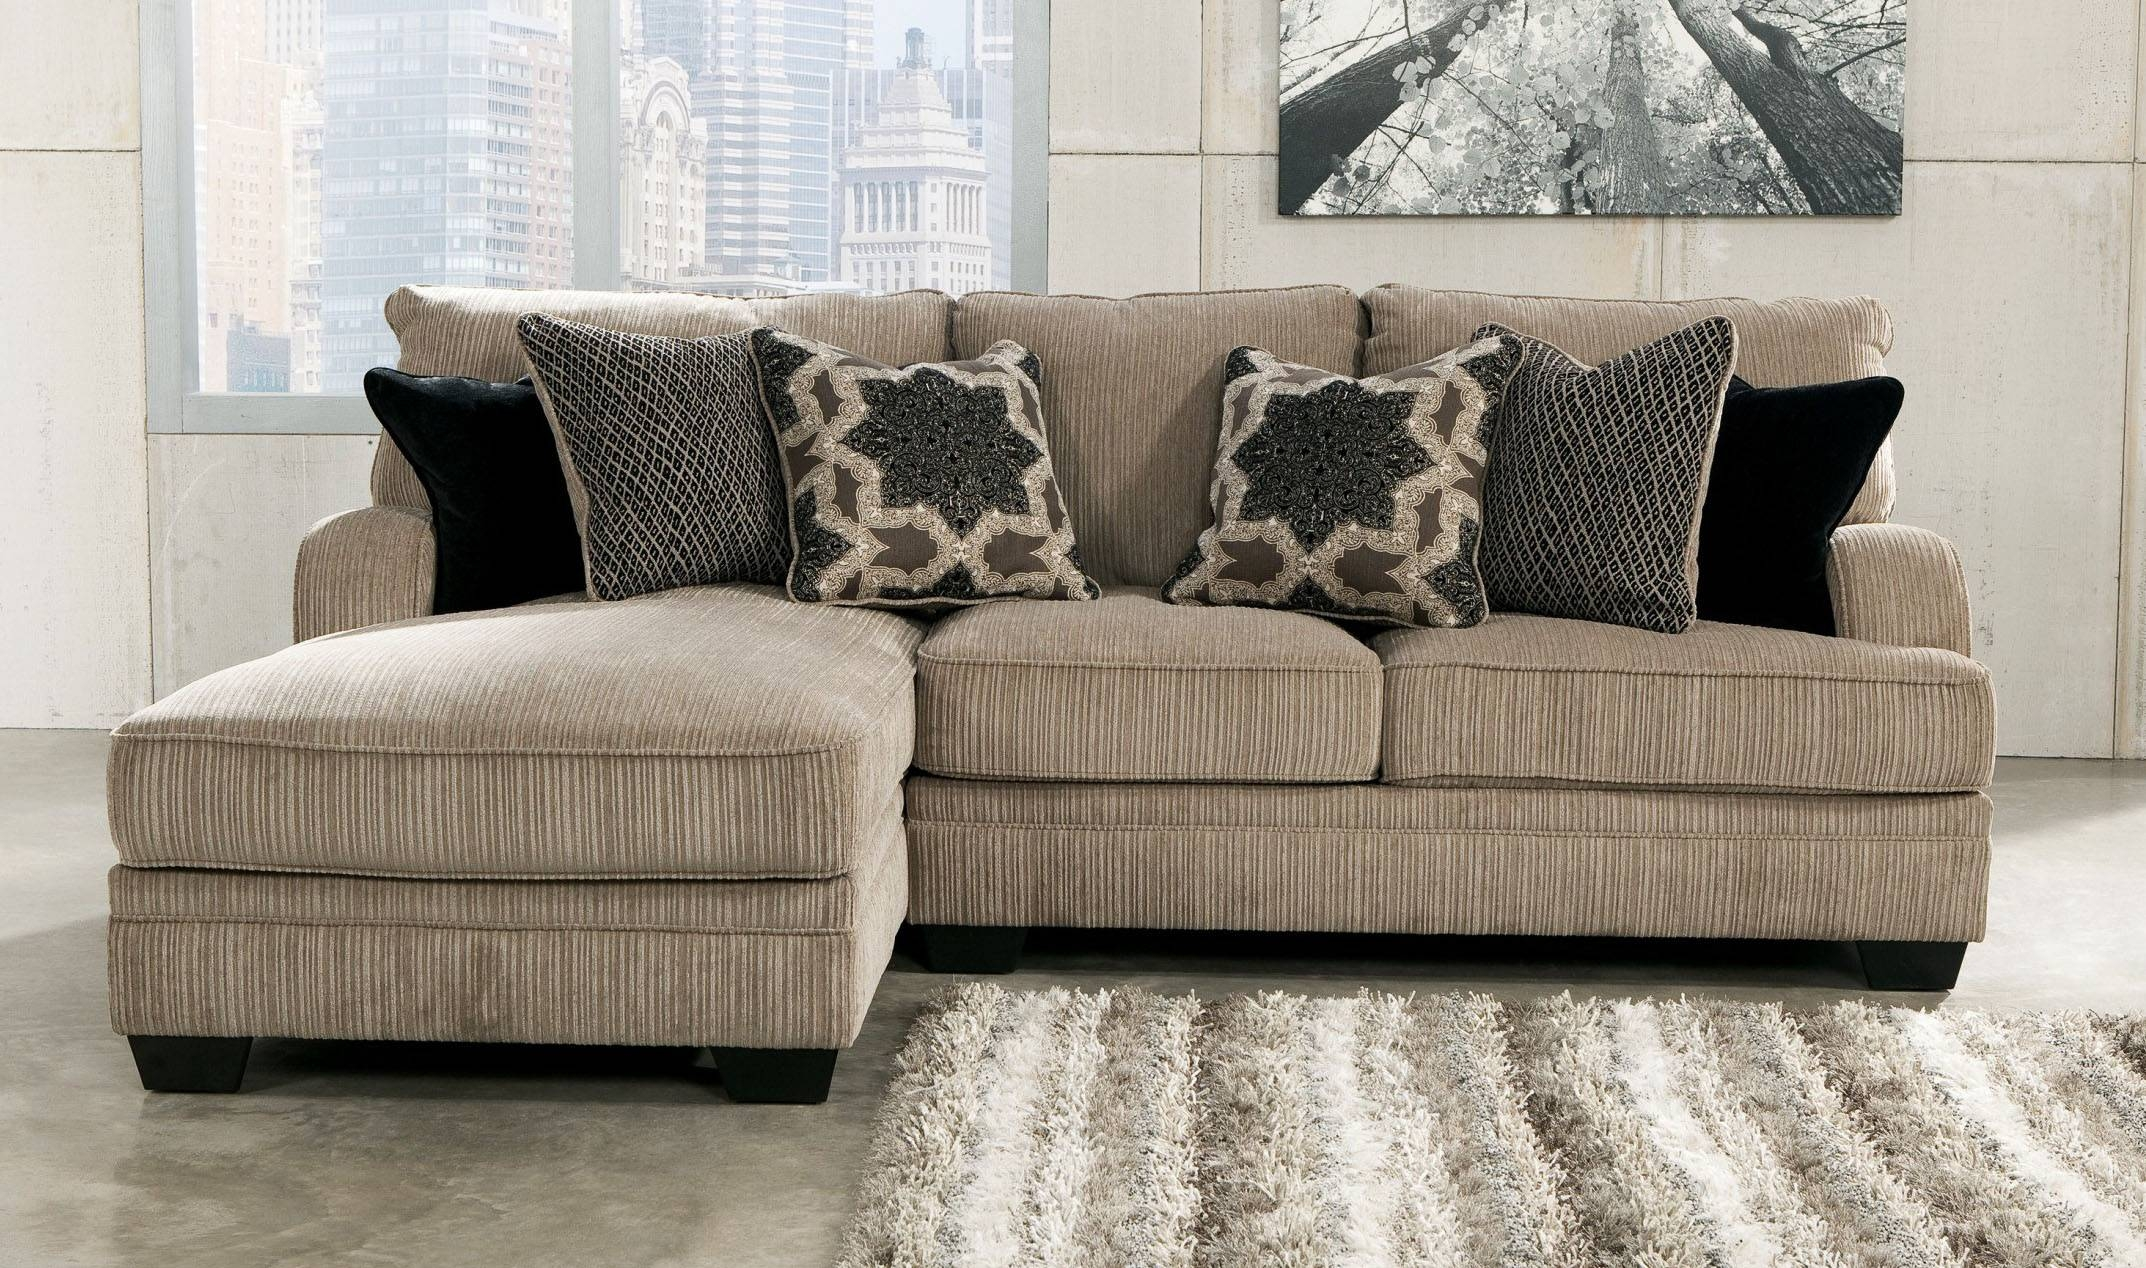 The Most Popular Small Scale Sectional Sofa 26 In Small Leather pertaining to Small Scale Leather Sectional Sofas (Image 14 of 15)